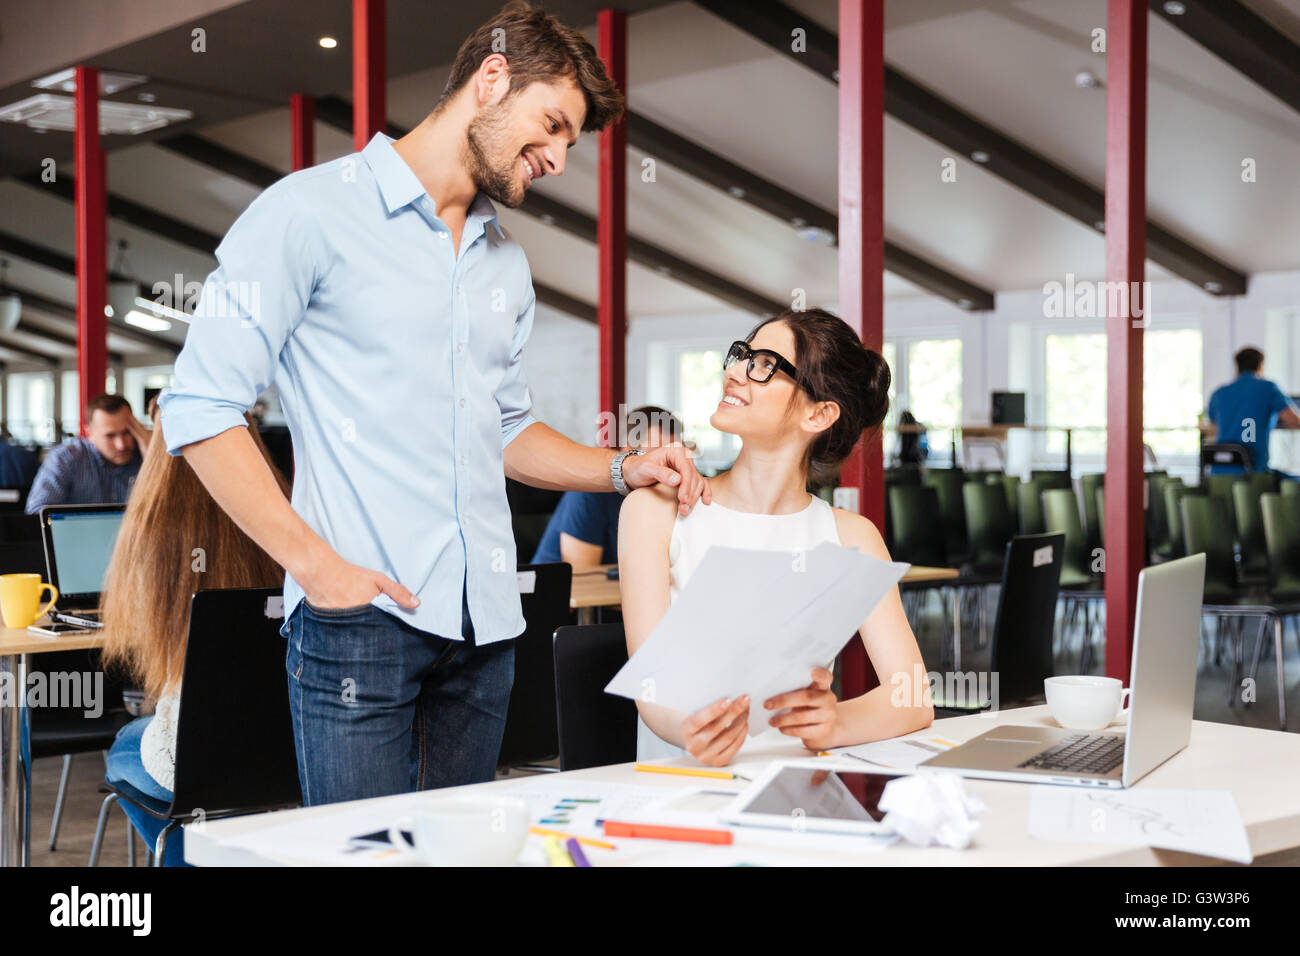 Two happy young business people smiling and working together - Stock Image